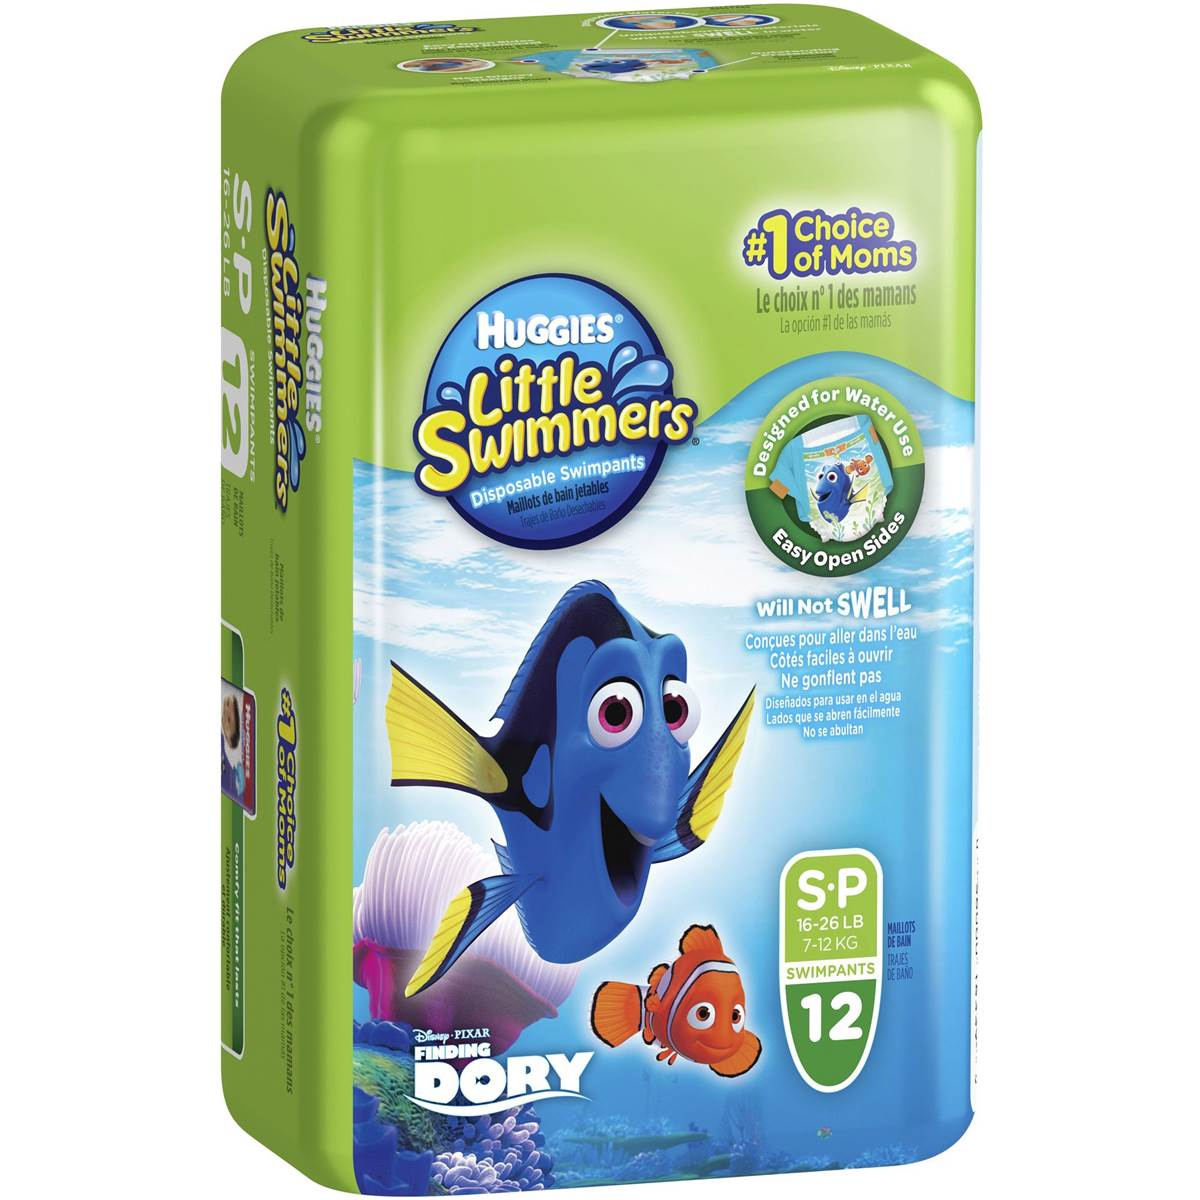 Huggies Little Swimmers Diapers Convenience Pack